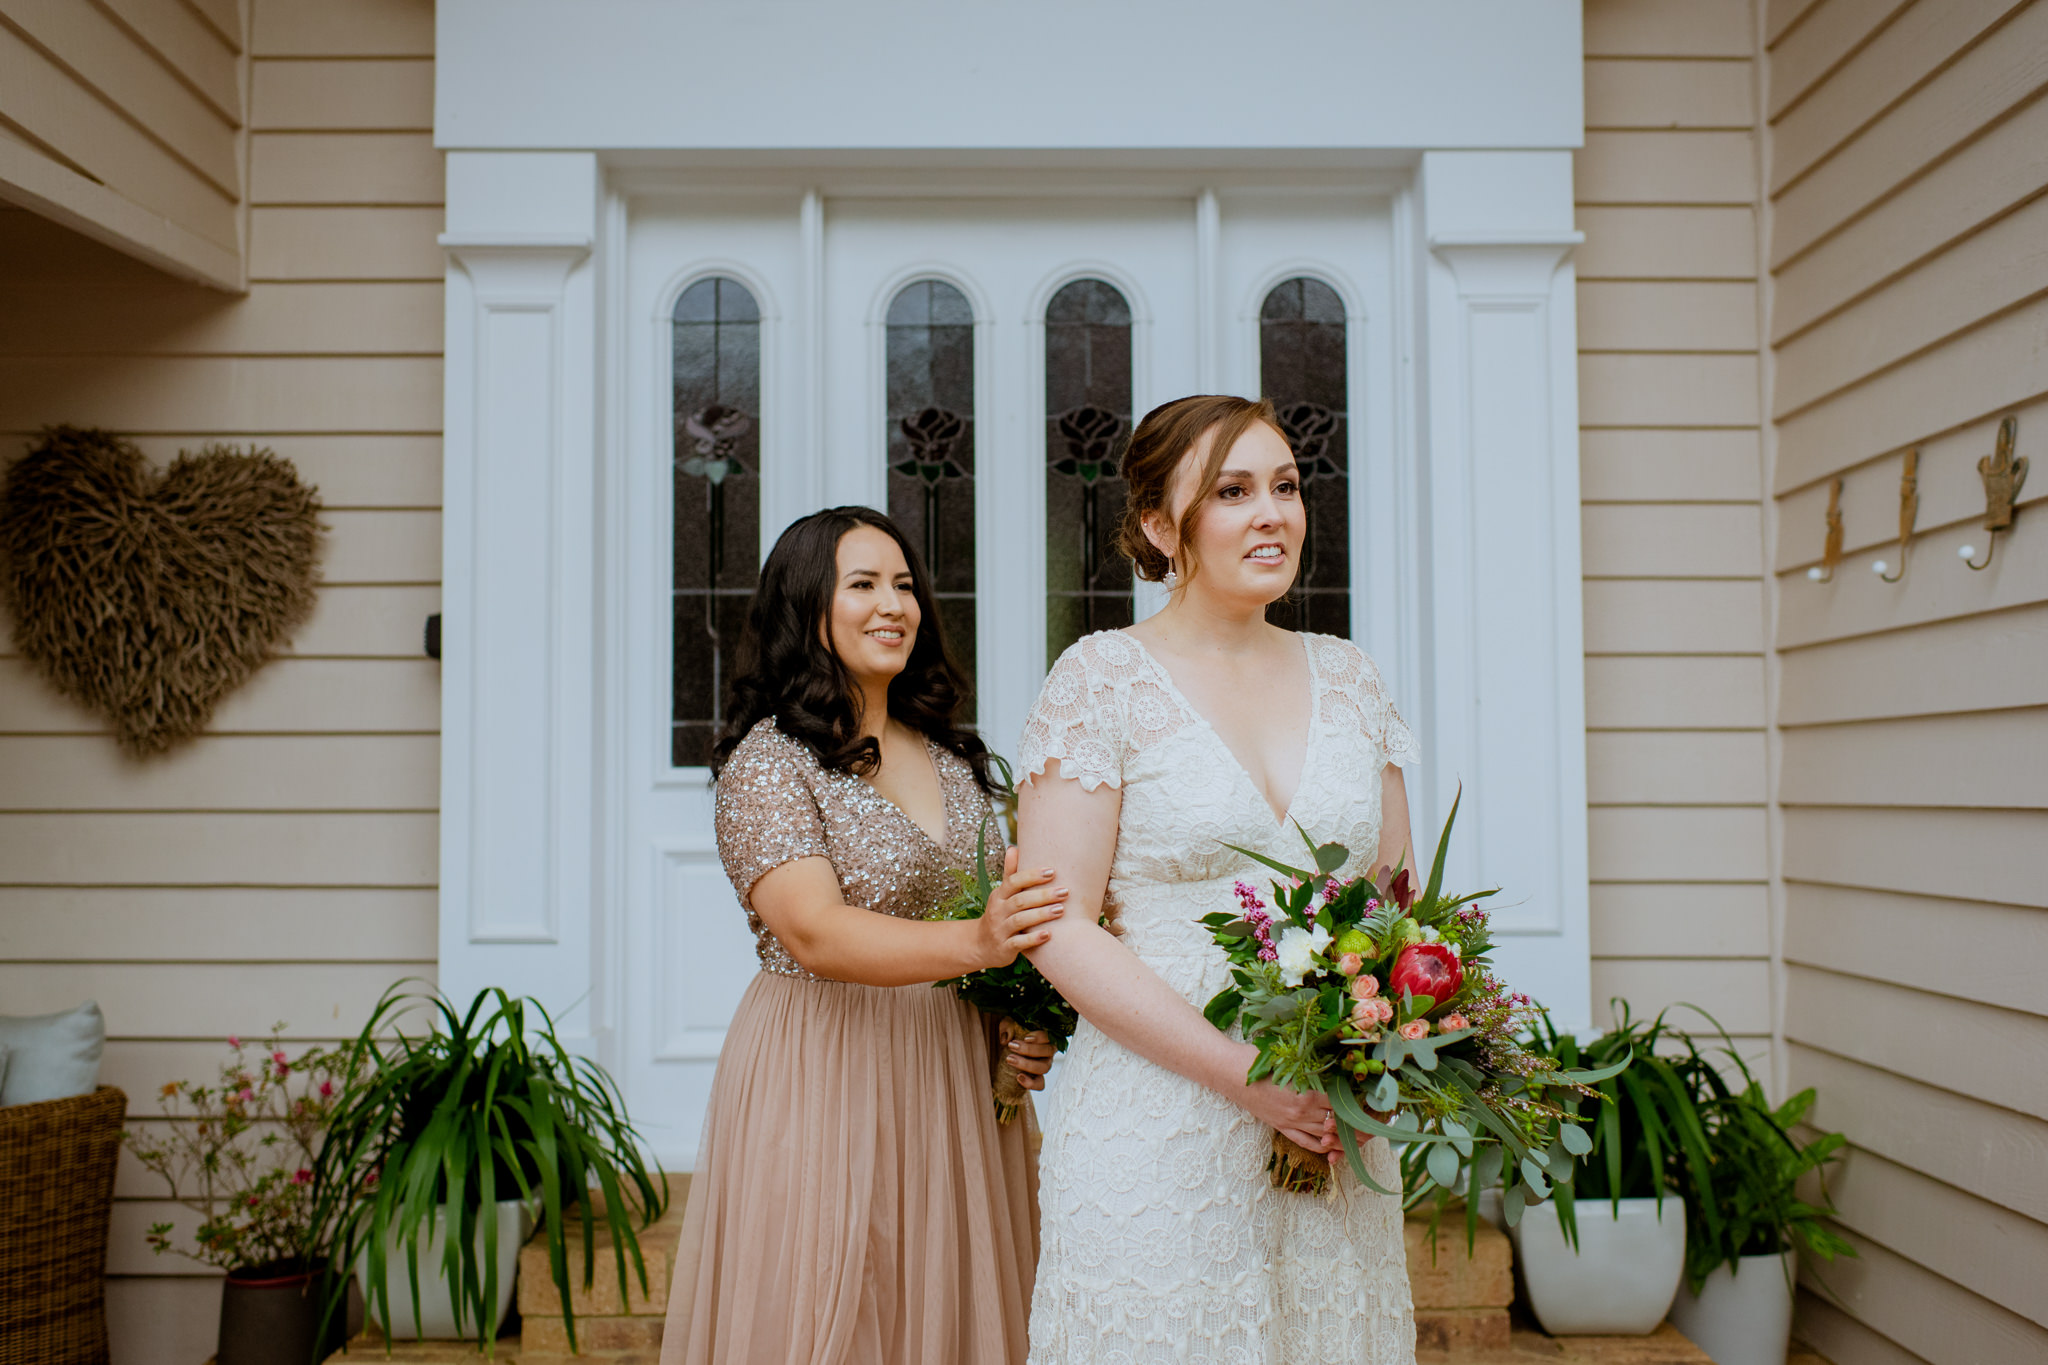 Same sex couple's first look before their wedding in front of white doors